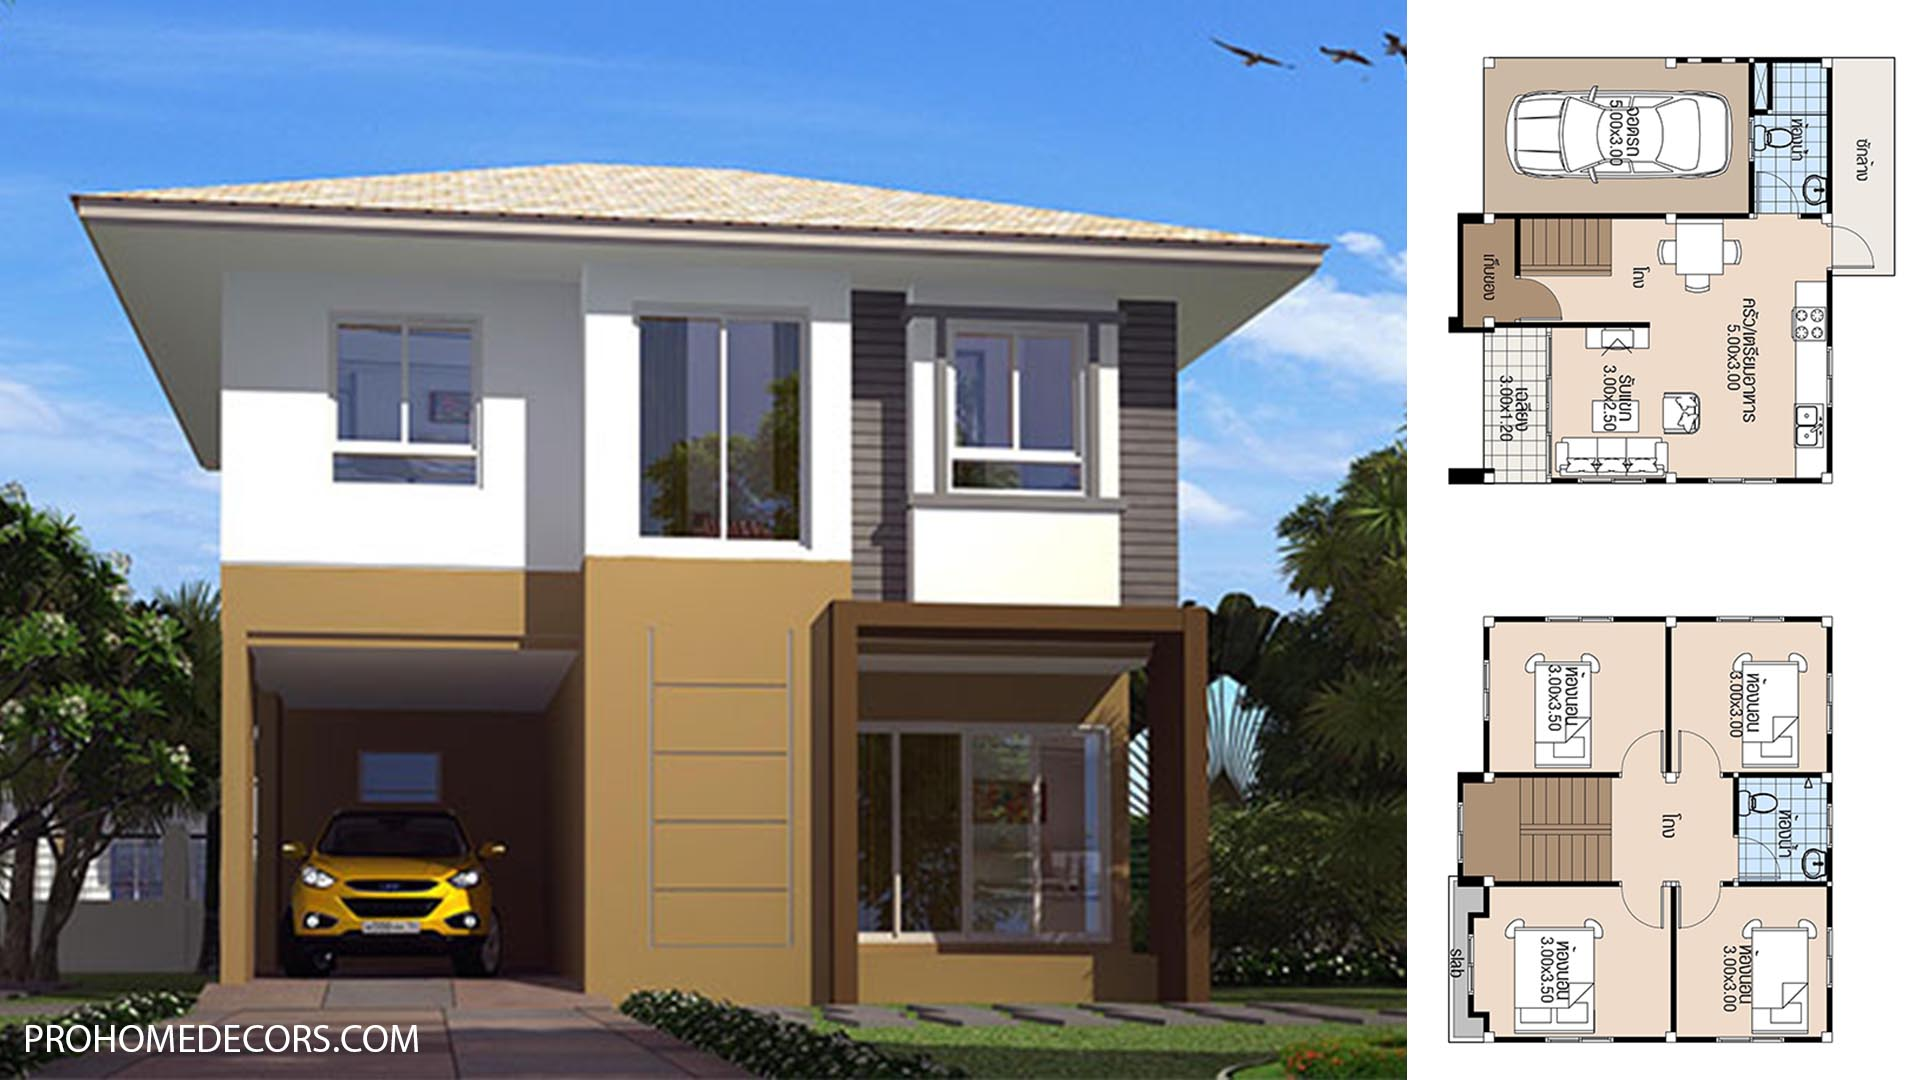 House Plans 8×6.5 with 4 Beds